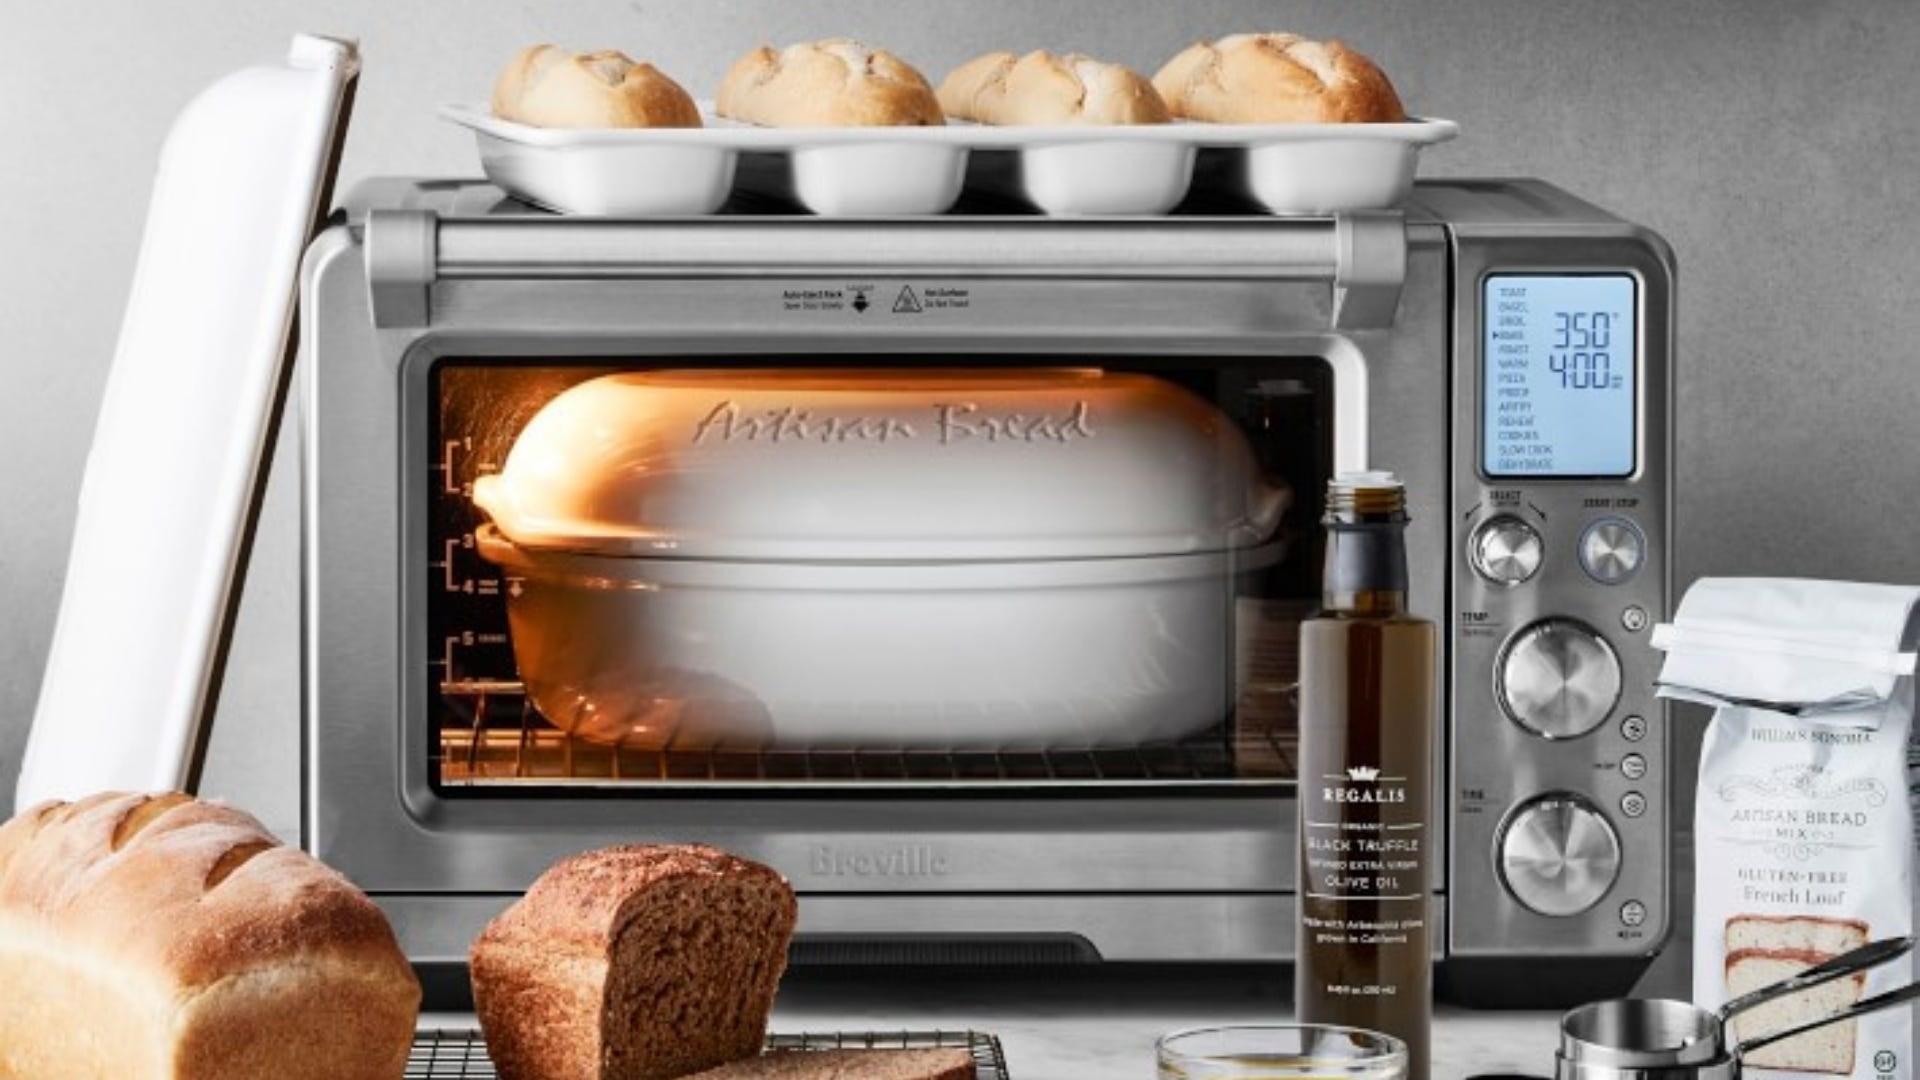 Toaster oven with white casserole dish inside